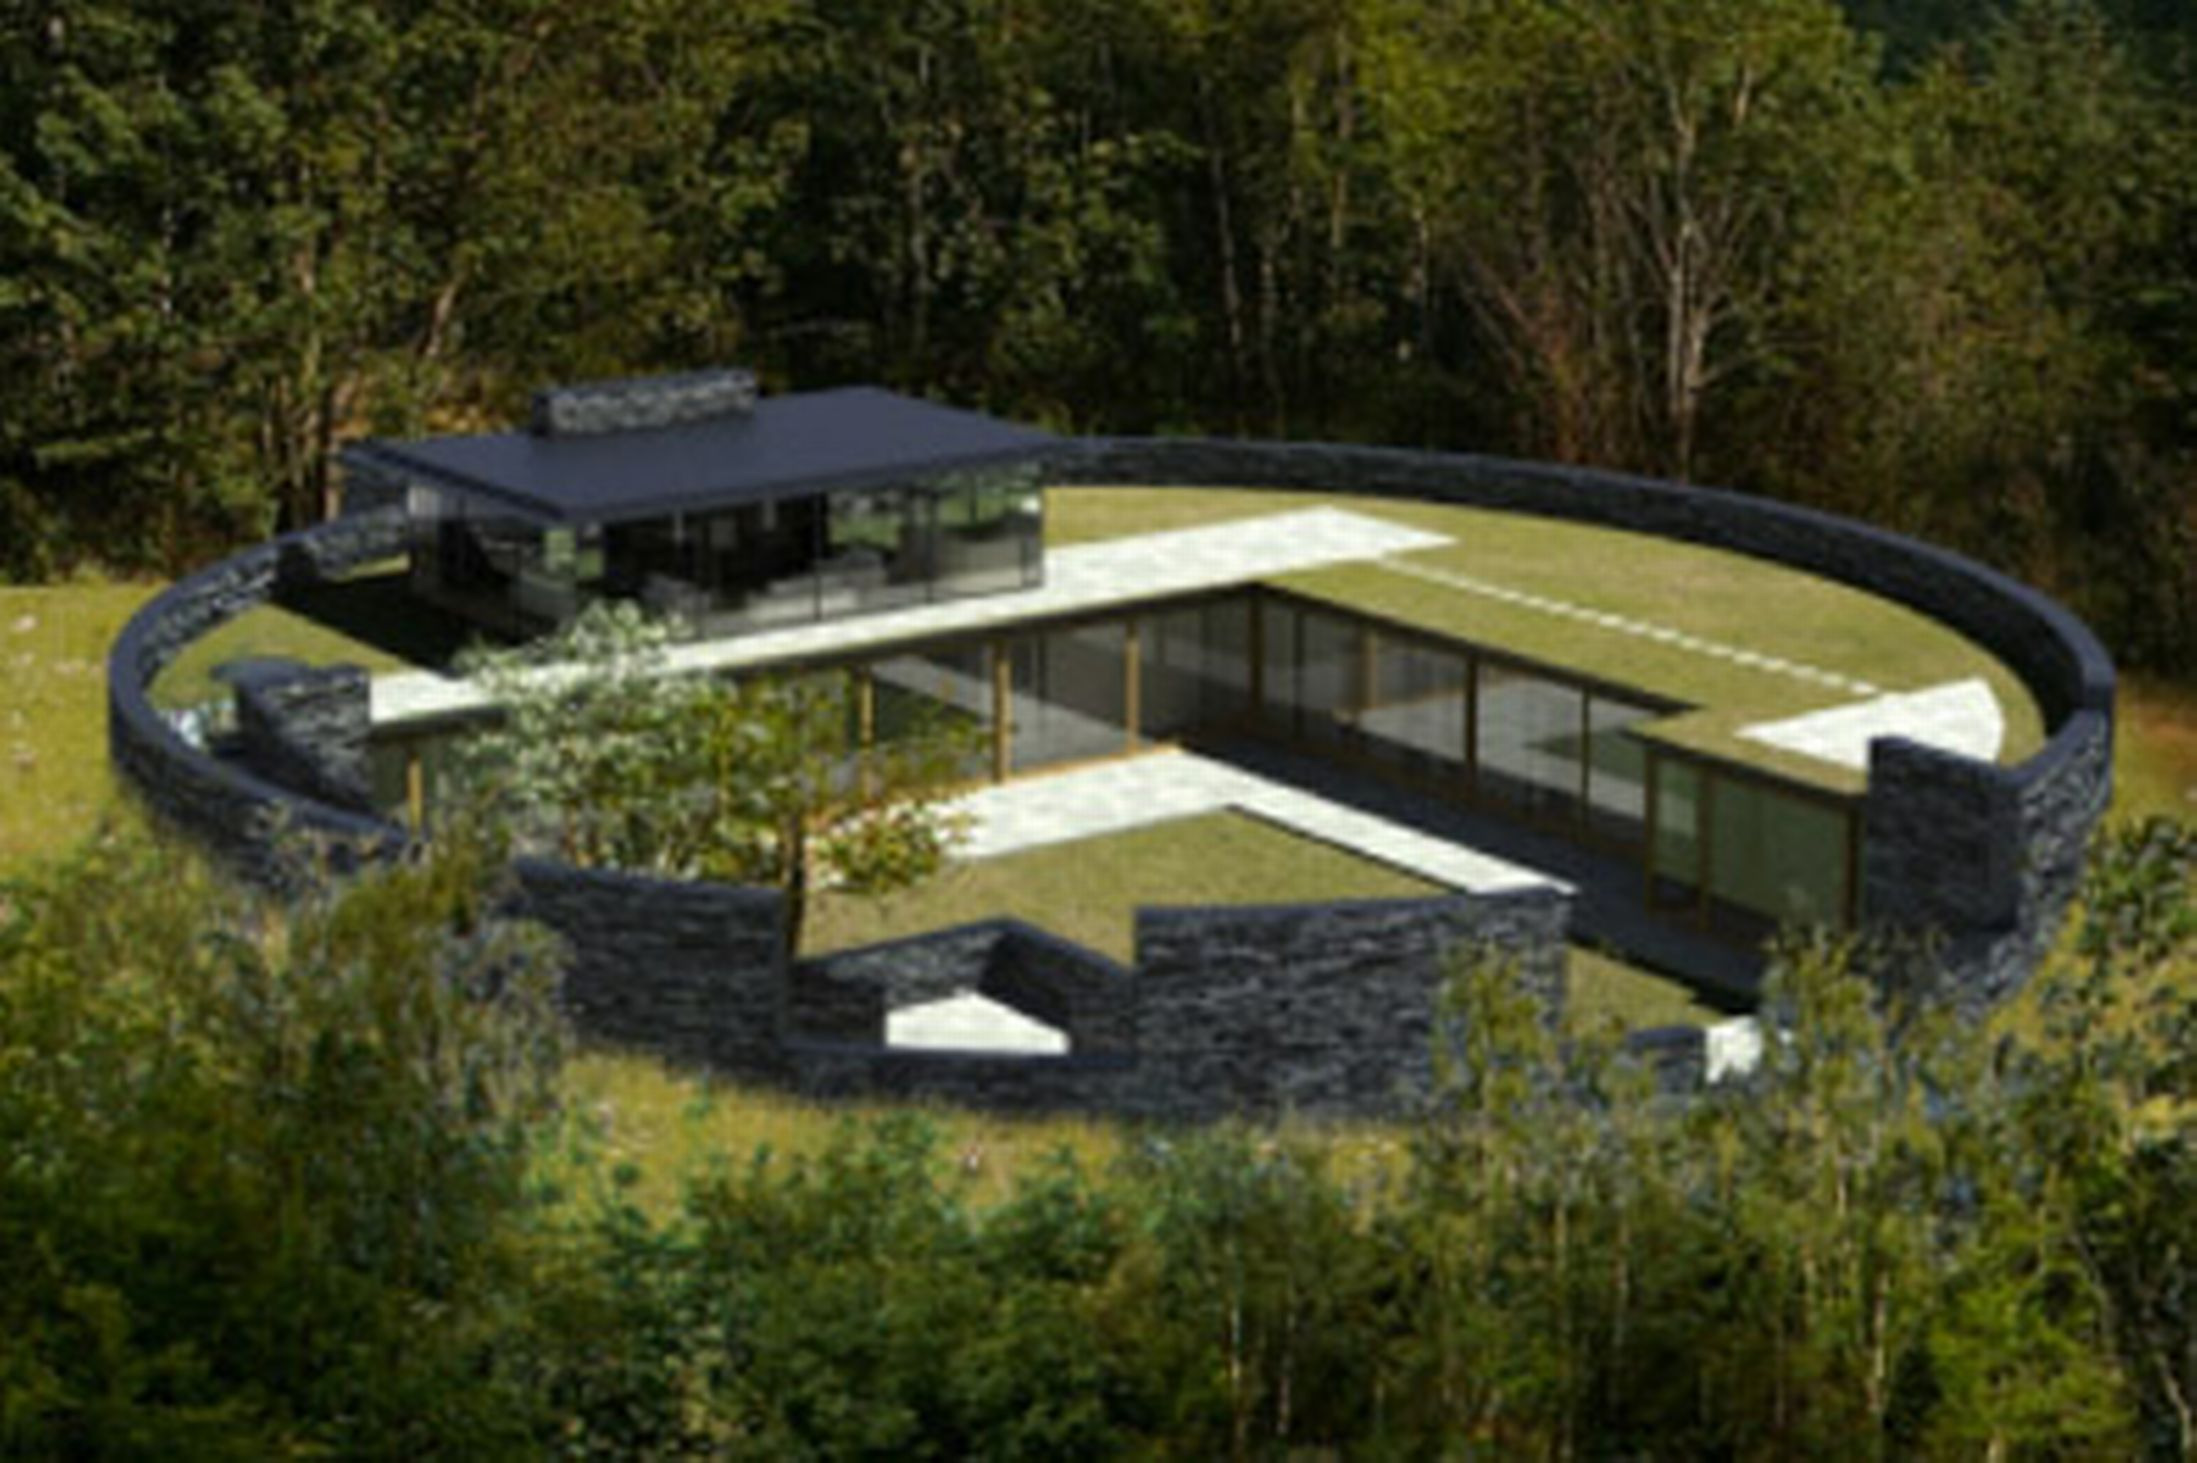 Grand designs host kevin mccloud backs forest home but for Grand design homes